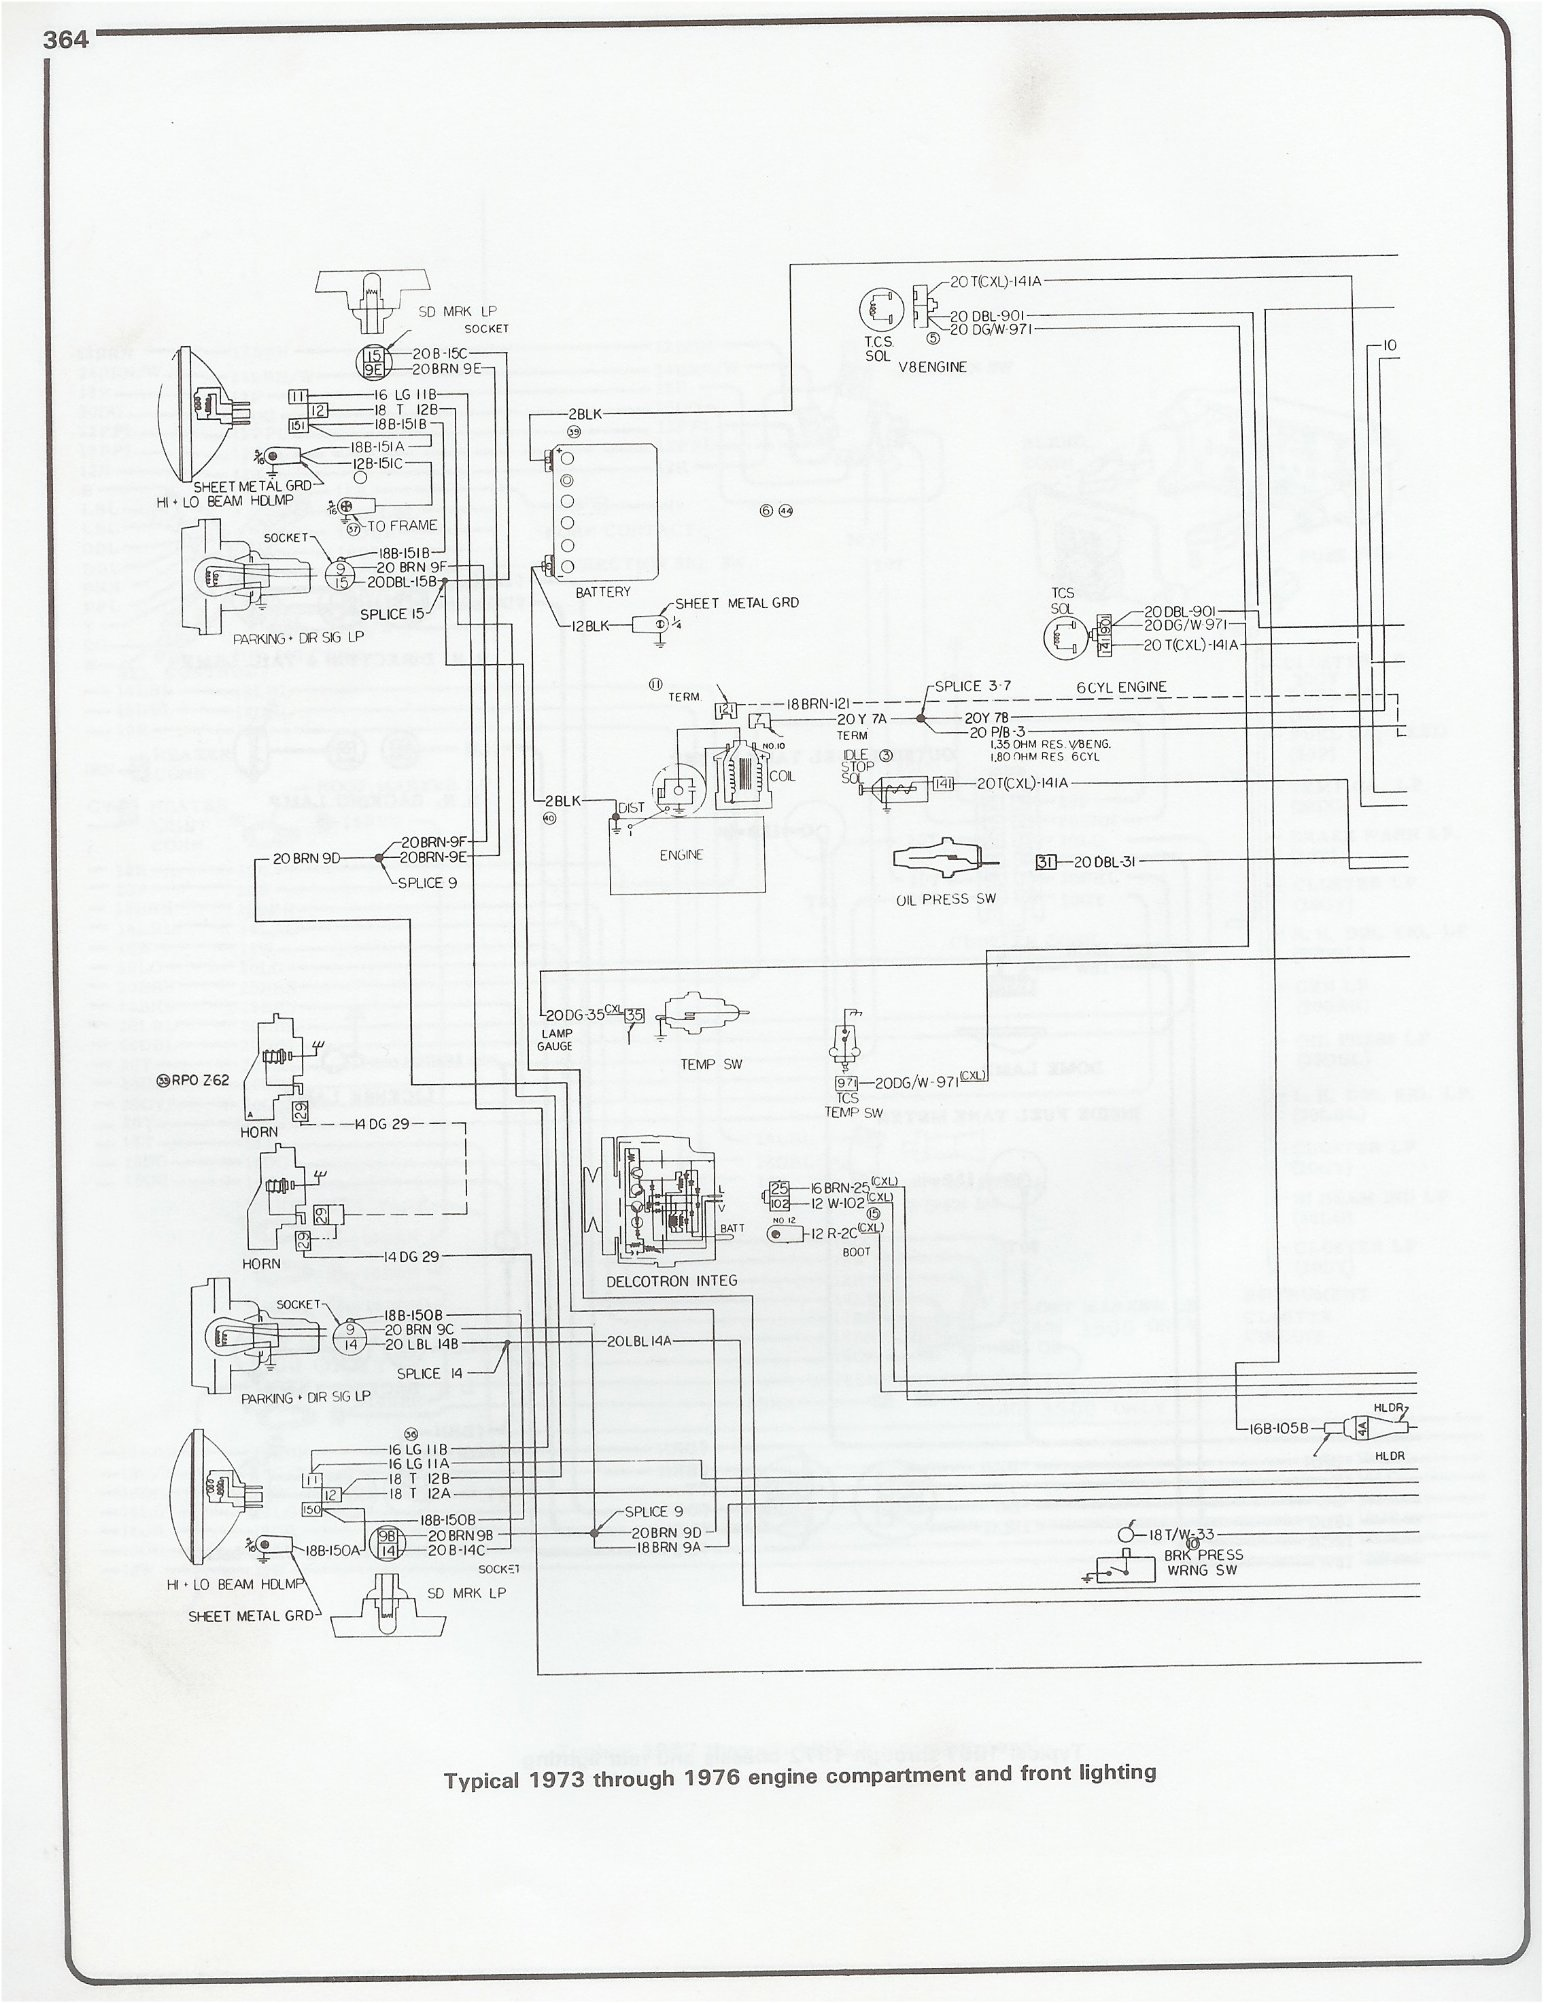 1976 Corvette Wiring Diagram Headlamp Content Resource Of 78 Fuse Box Complete 73 87 Diagrams Rh Forum 87chevytrucks Com 1973 1979